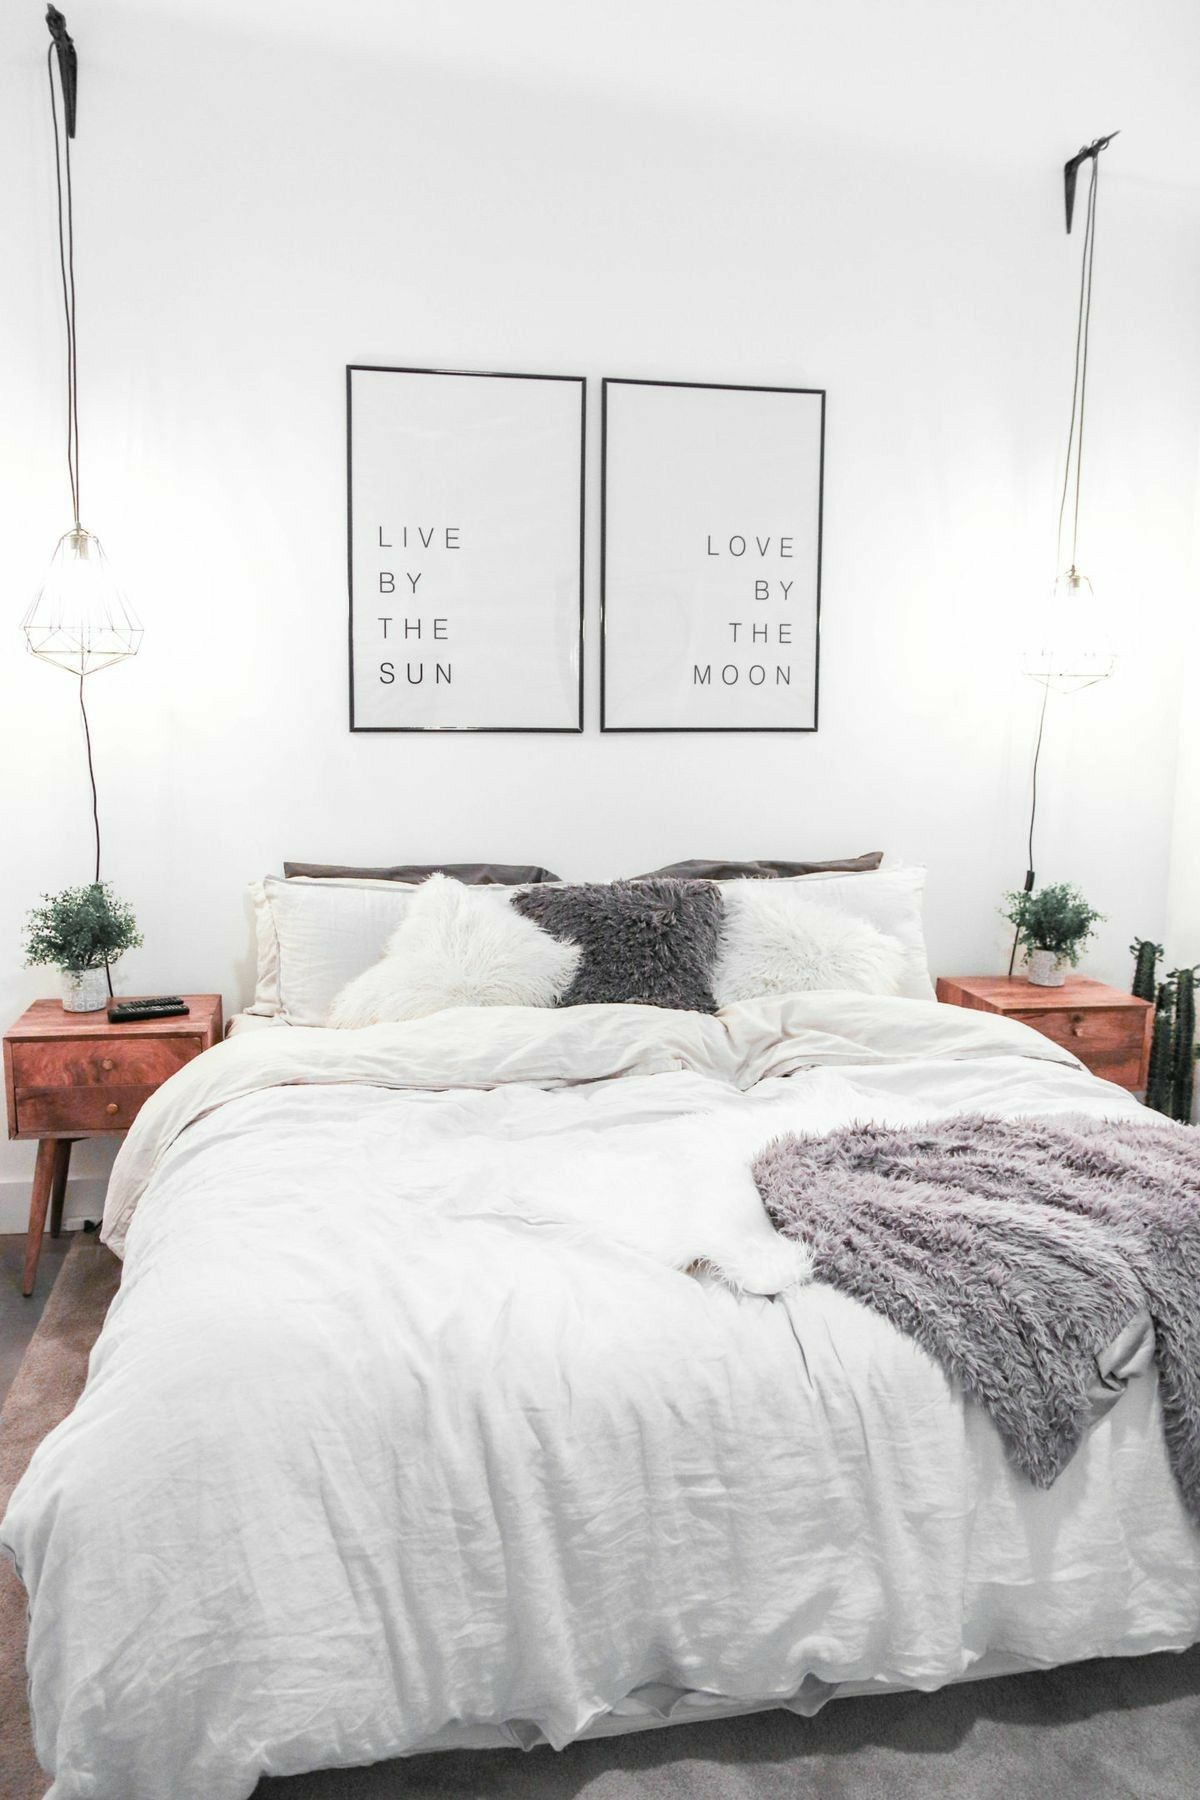 Live by the sun love by the moon wall art my room pinterest